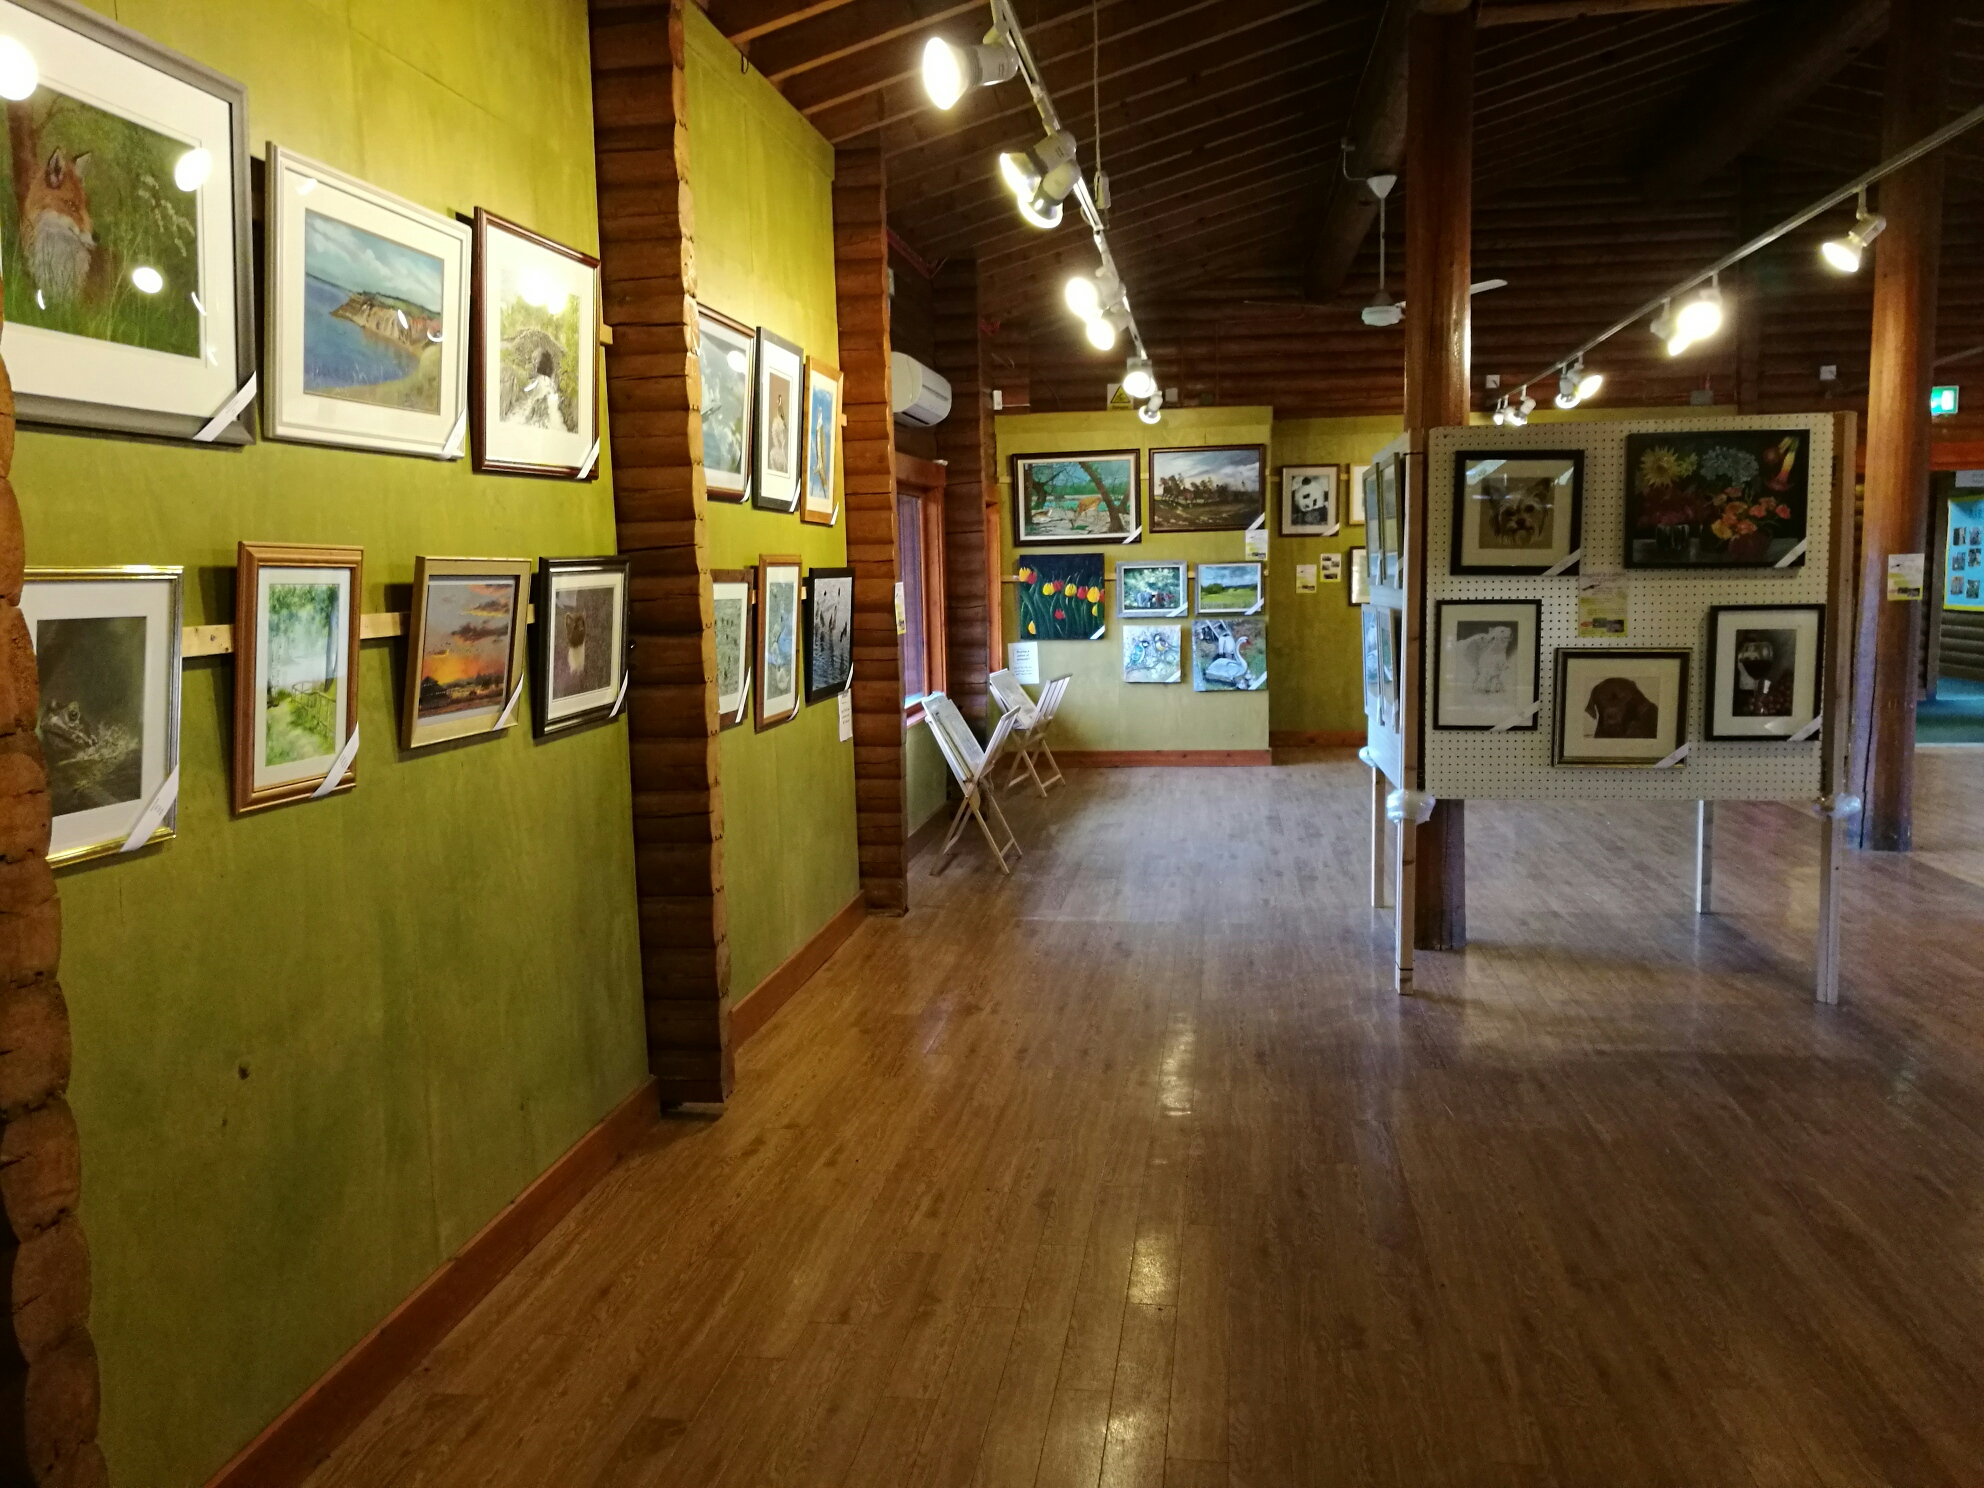 The latest exhibition has been unveiled at WWT Martin Mere Wetland Centre by the Maghull and Lydiate Art Group.        The art group has been in existence since 1970 and is an integrated member of the community with monthly meetings, professional painting demonstrations and weekly painting...